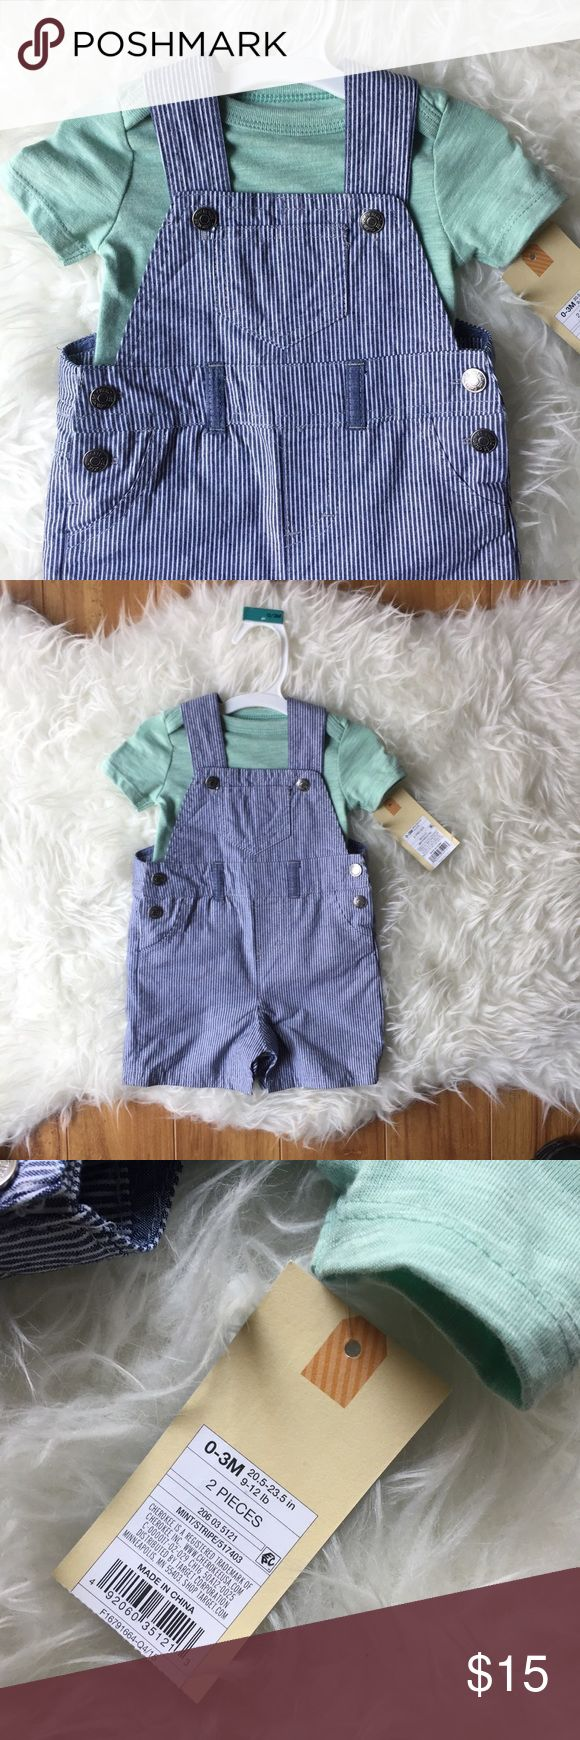 ⚡️Two Piece Striped Overalls and Tee Aqua soft tee and blue and white striped train conductor overalls by Cherokee. Brand New. So cute. Size 0-3mo.   〰Baby clothing prices are firm as singles, but bundled I can offer you more discount and you save on shipping! Win/win!〰 Cherokee Matching Sets